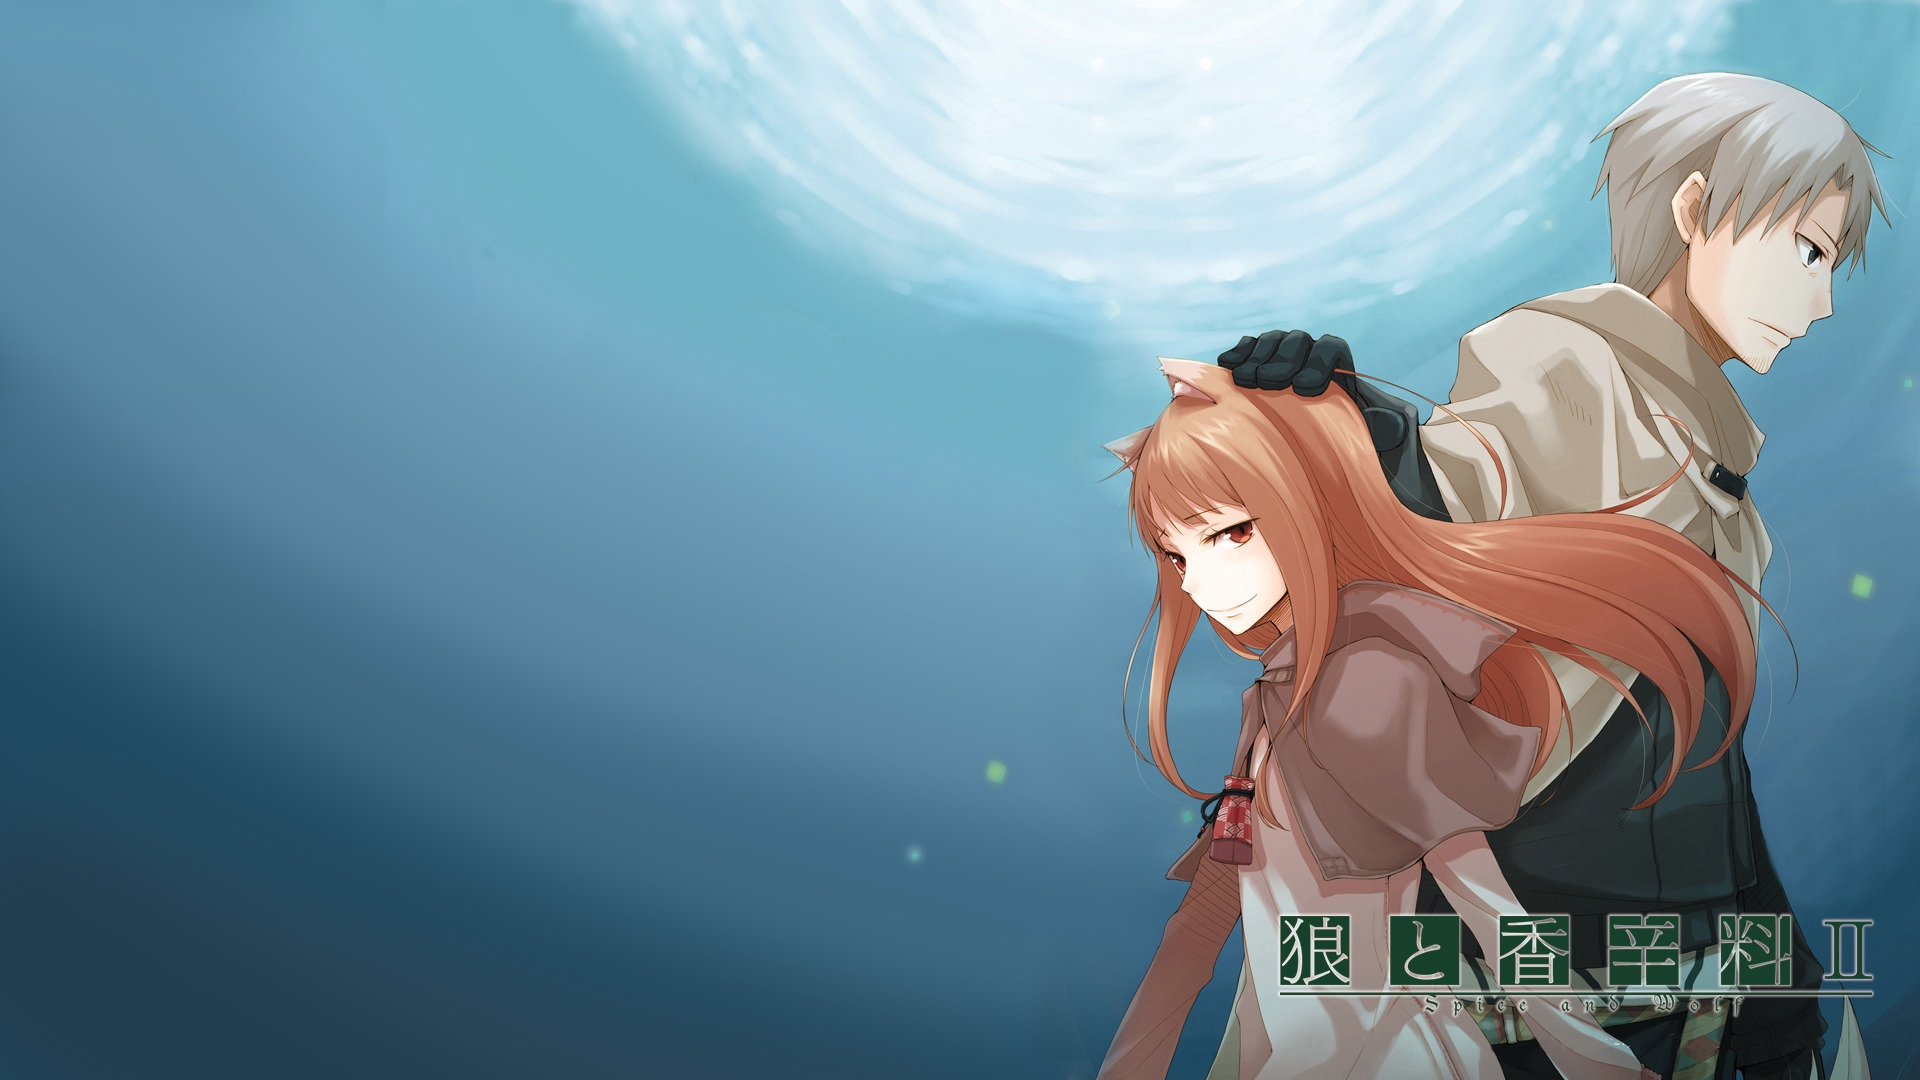 Download Wallpaper x Spice and wolf Horo Girl Fox HD HD